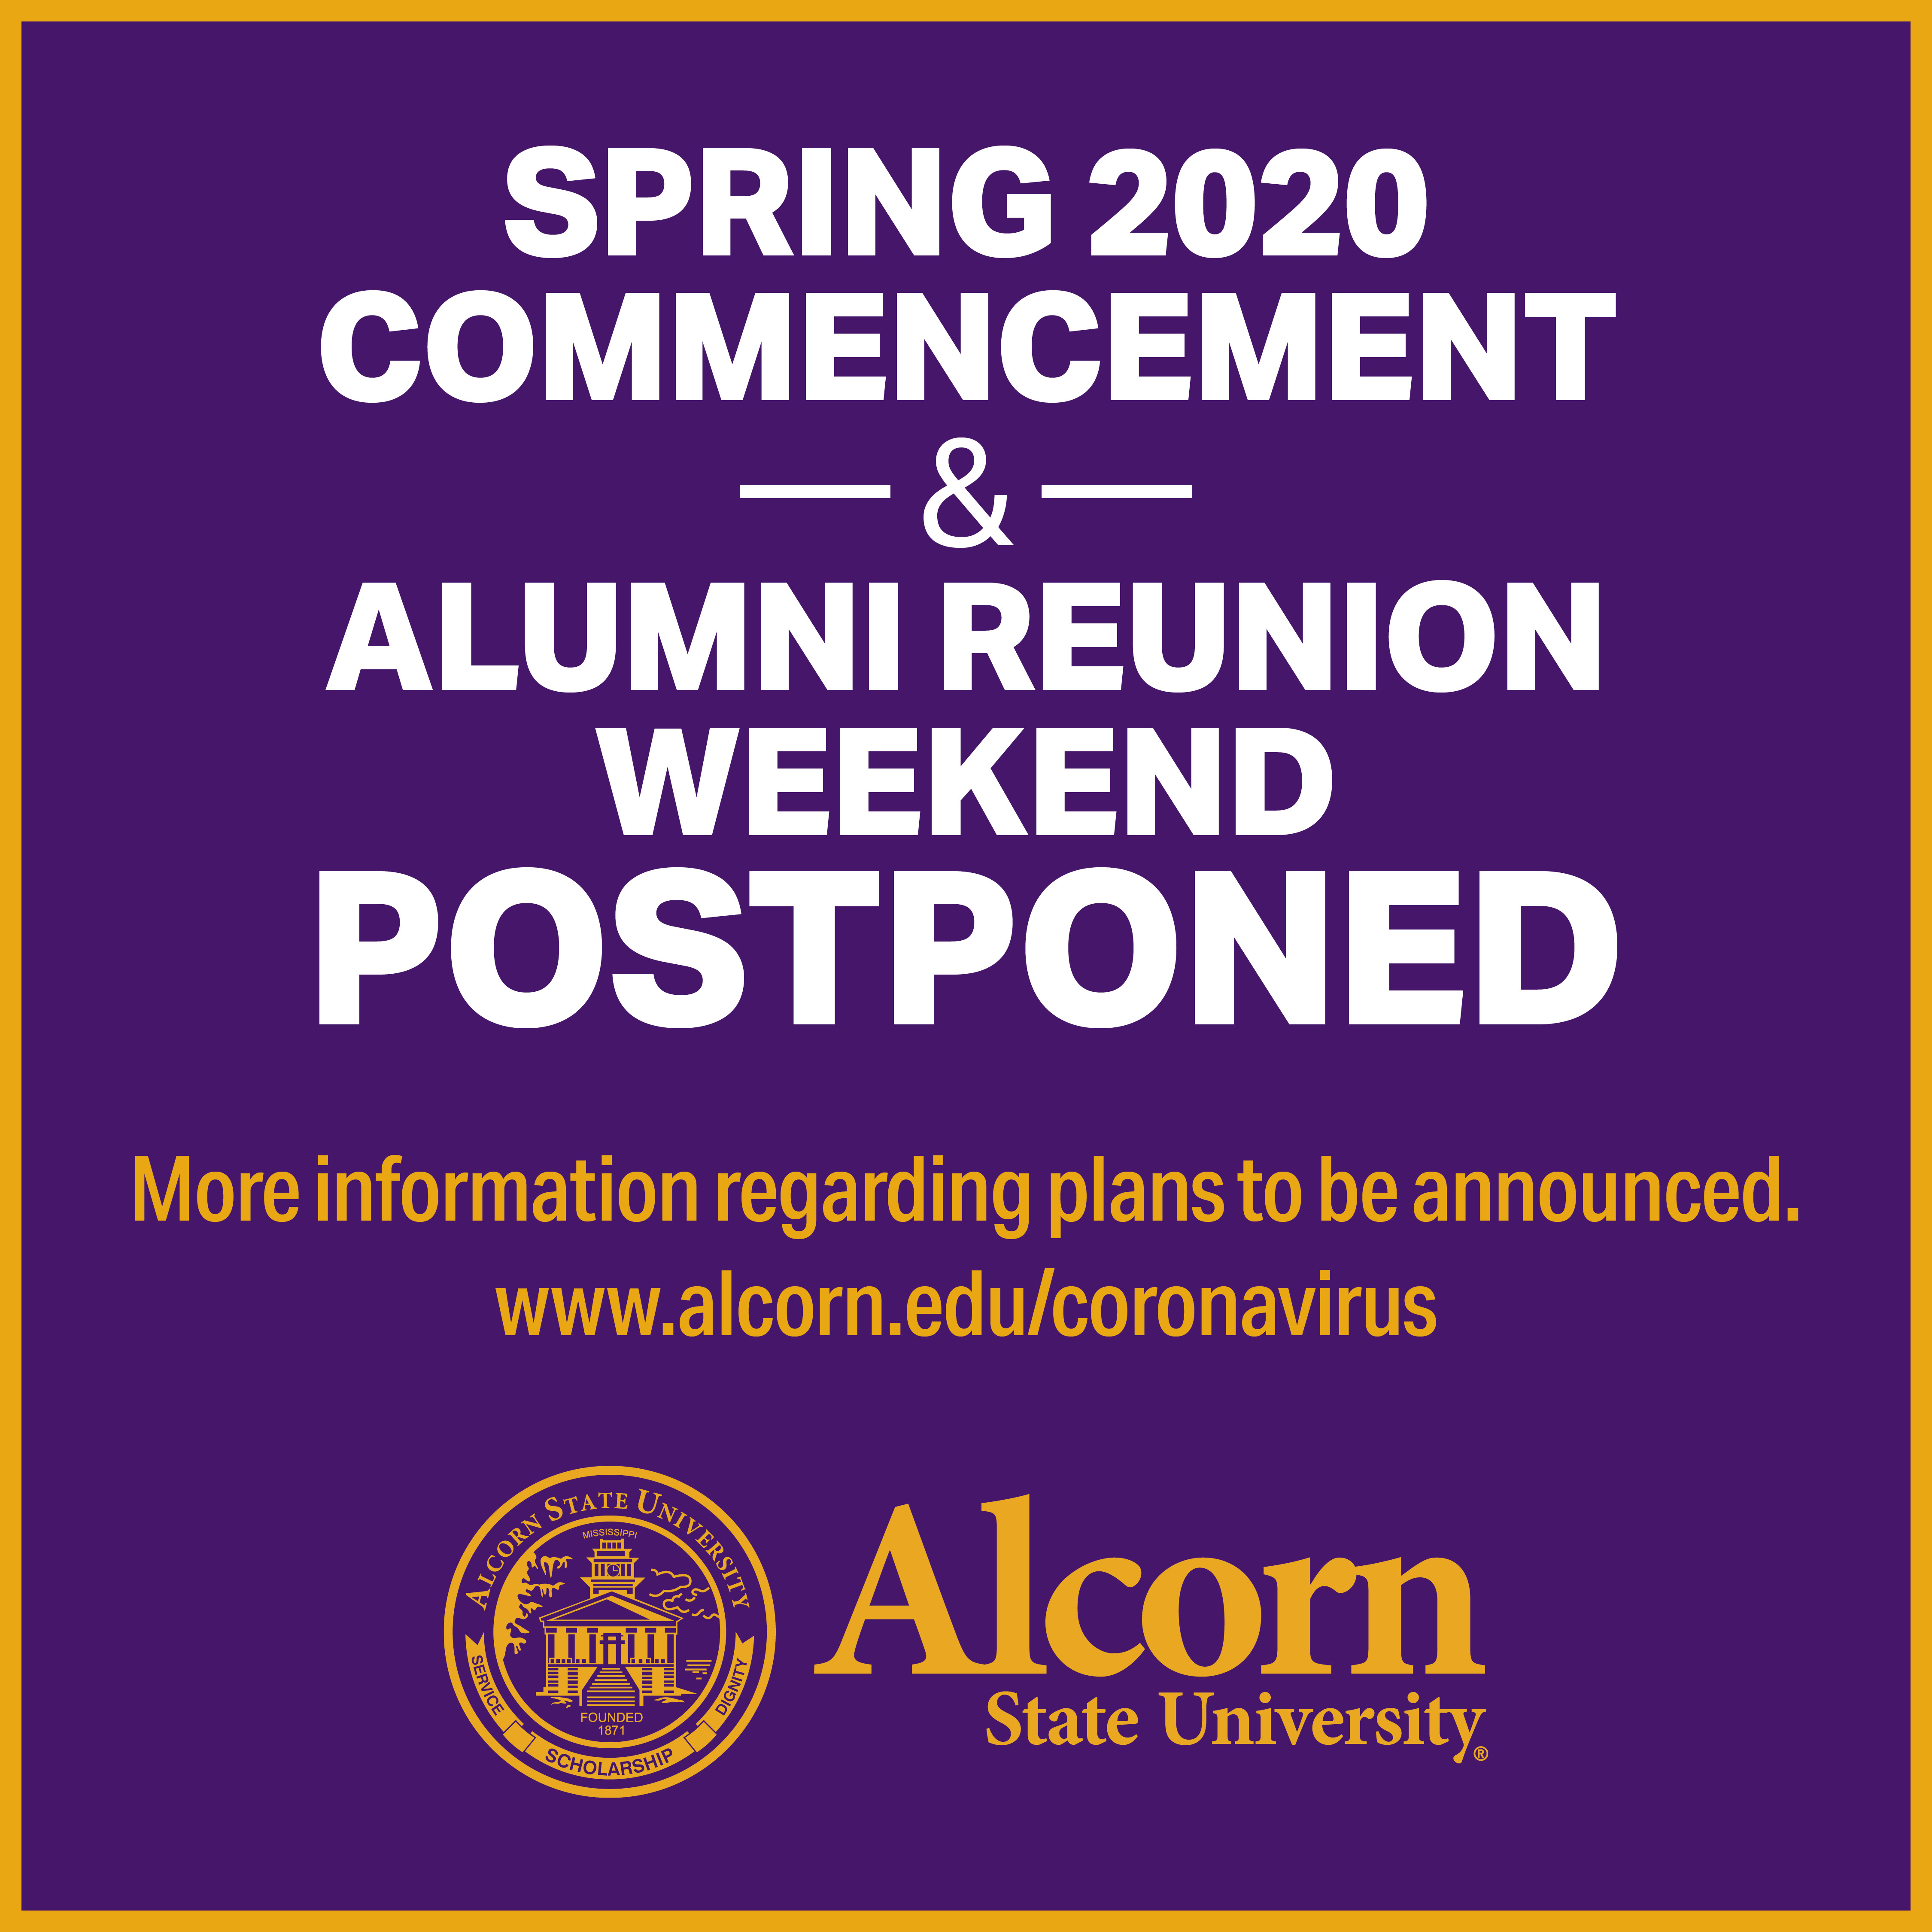 Spring 2020 Commencement and Alumni Reunion Weekend Postponed